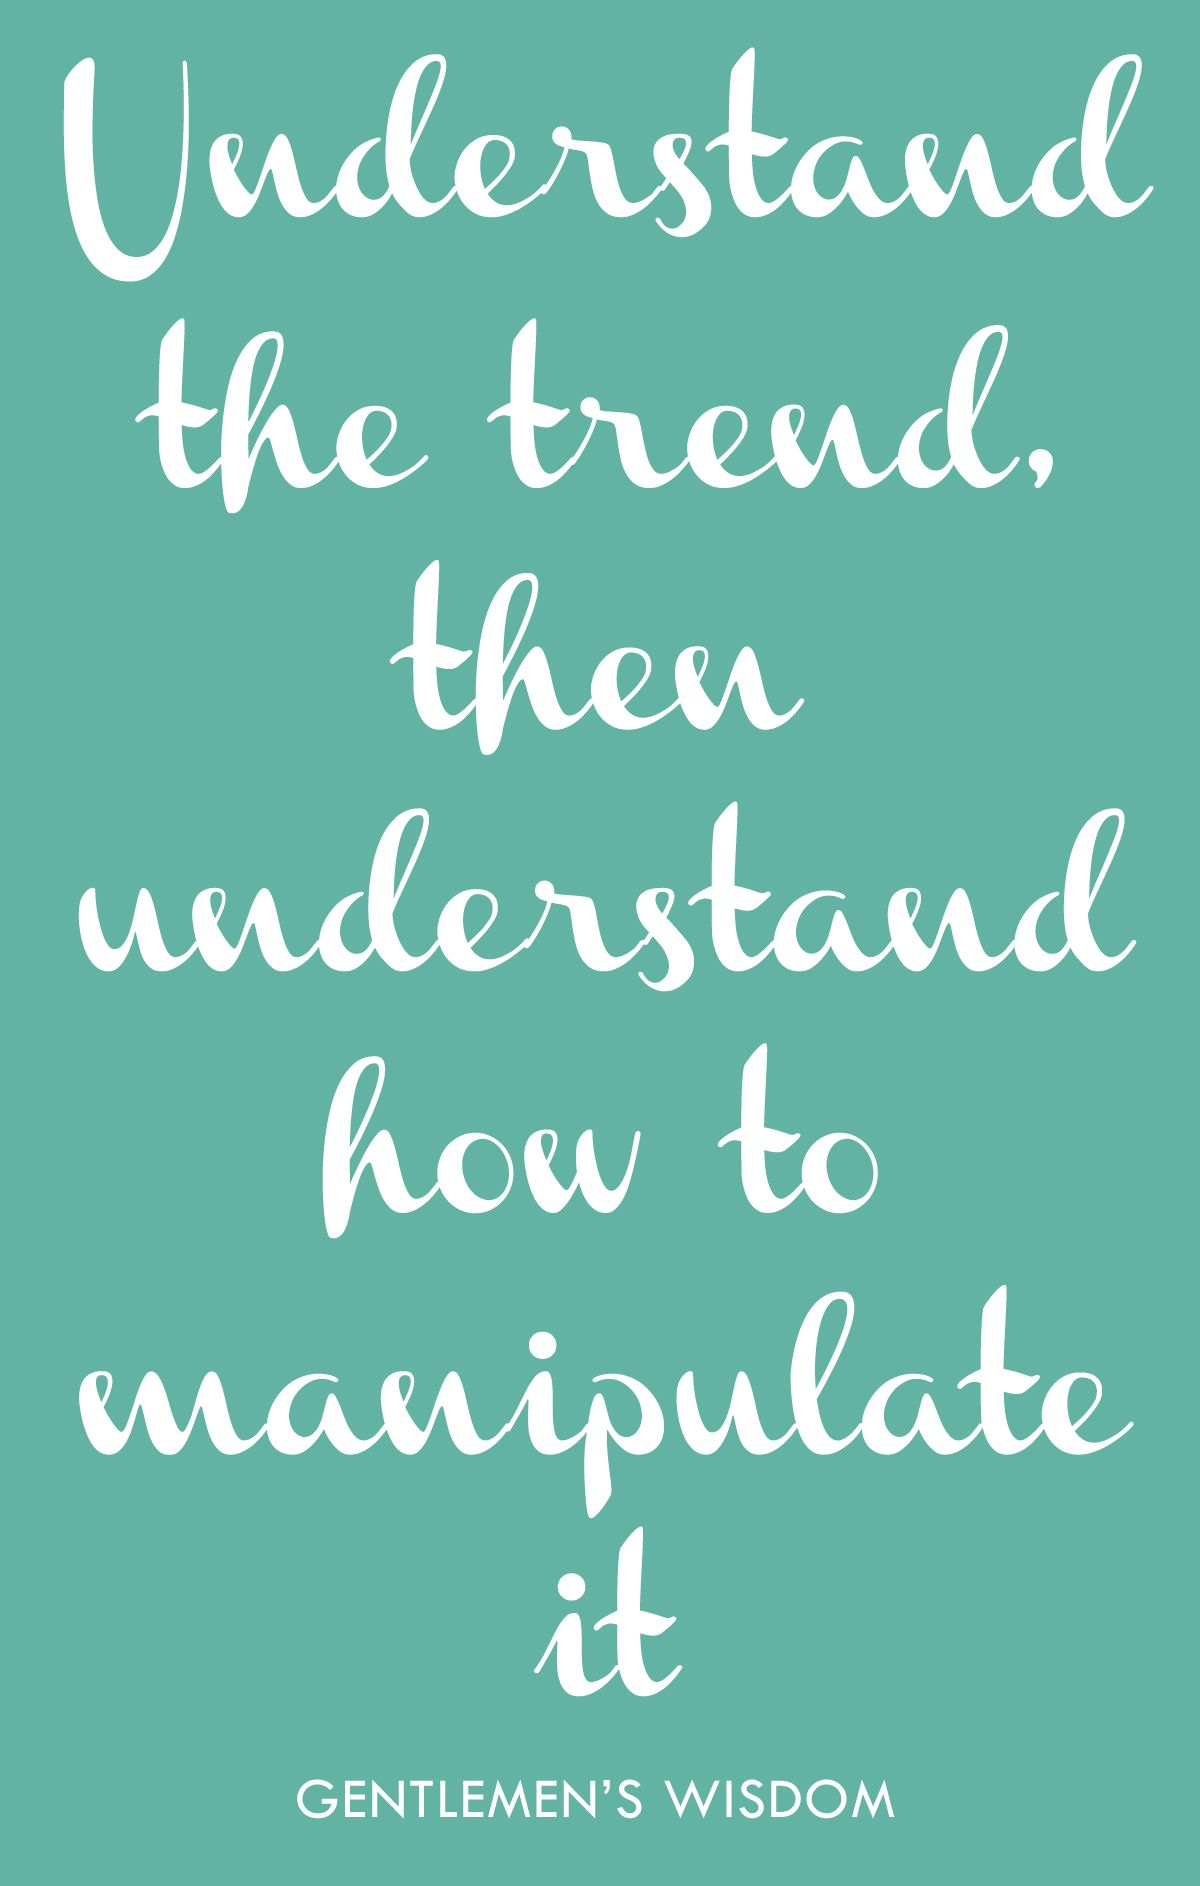 Understand the trend, then understand how to manipulate it.